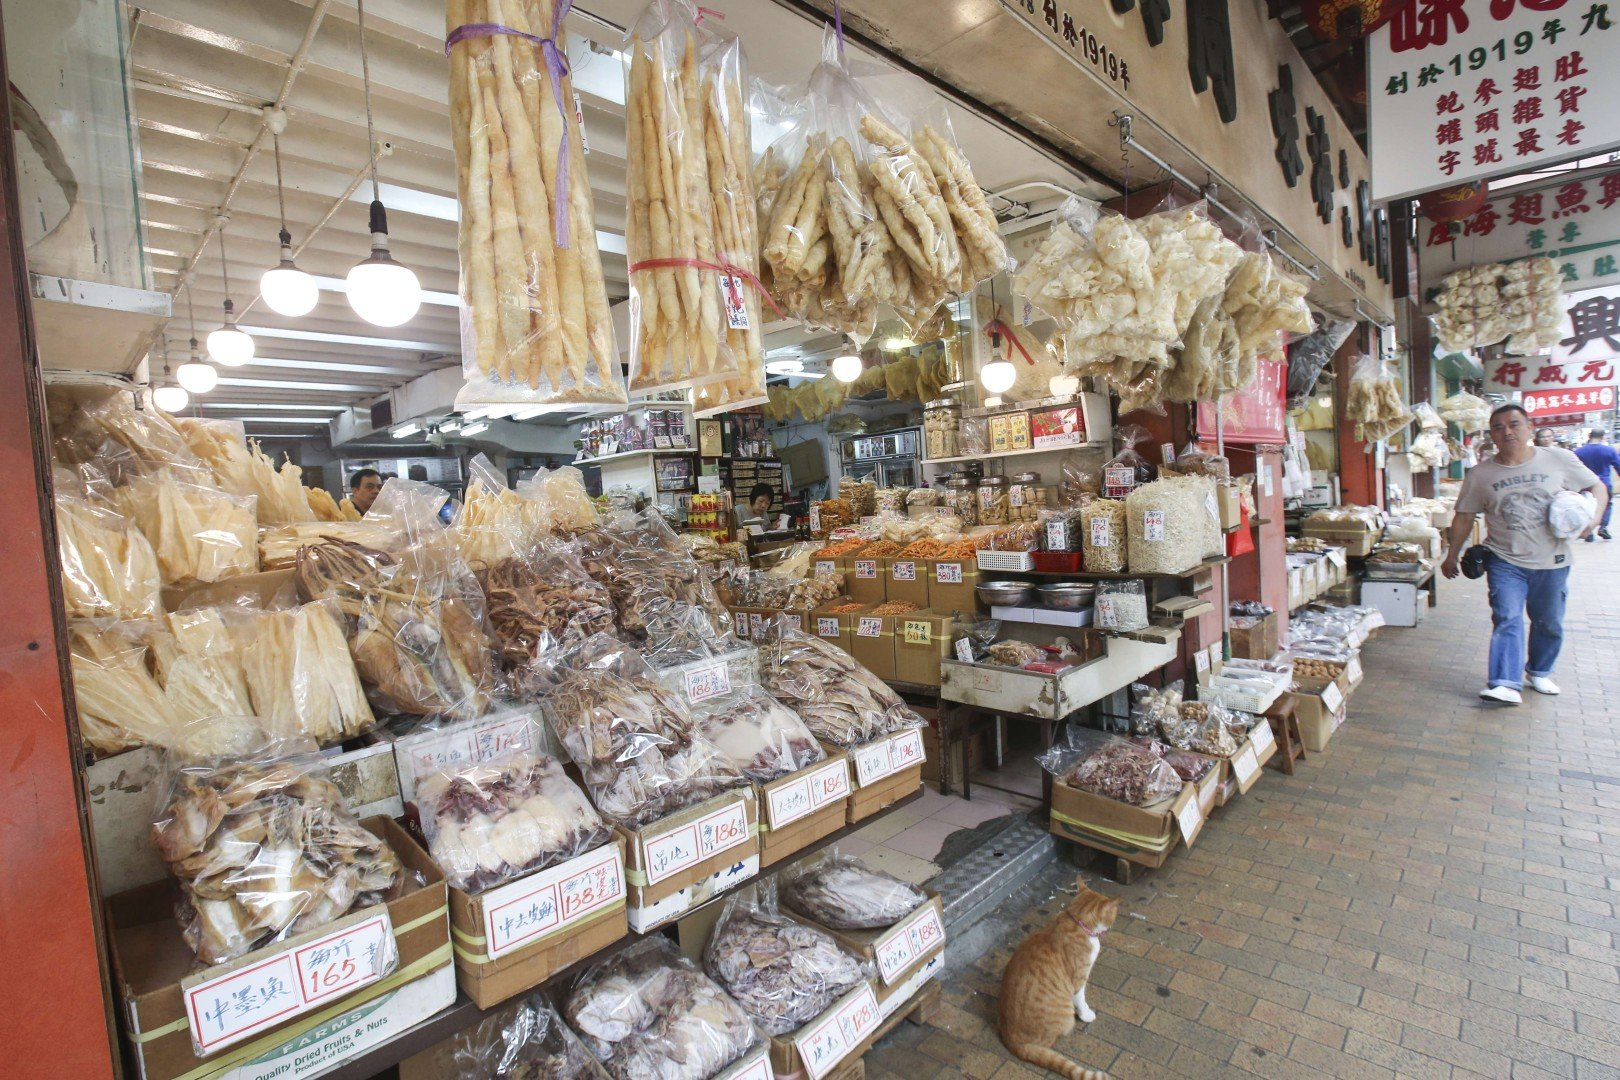 Hong Kong's Dried Seafood Street demystified: the smells, what sells